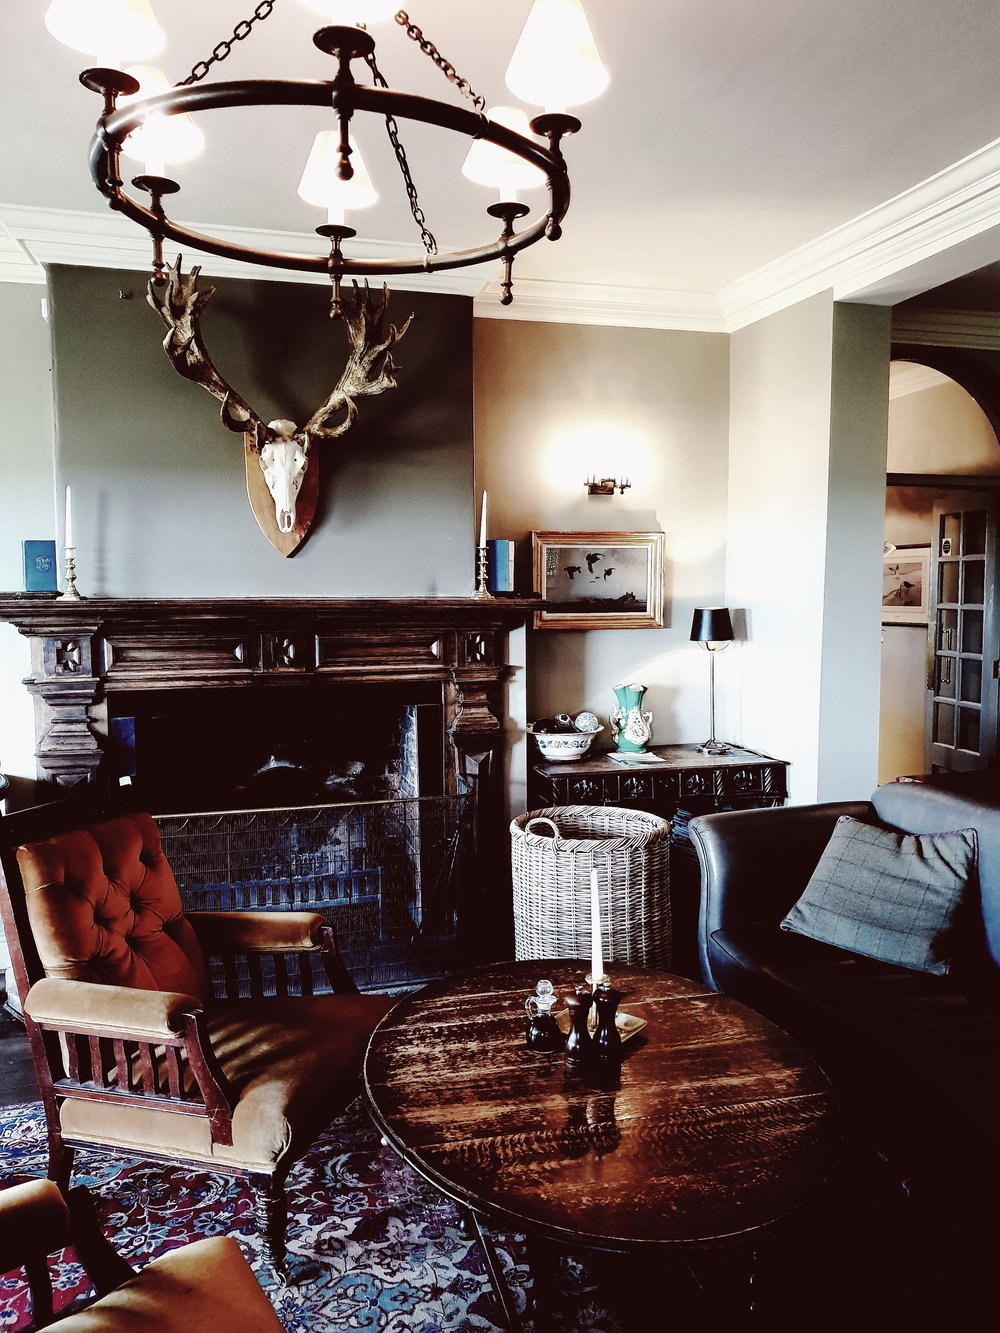 The  Victoria Inn  at Holkham where we enjoyed a delicious pub lunch